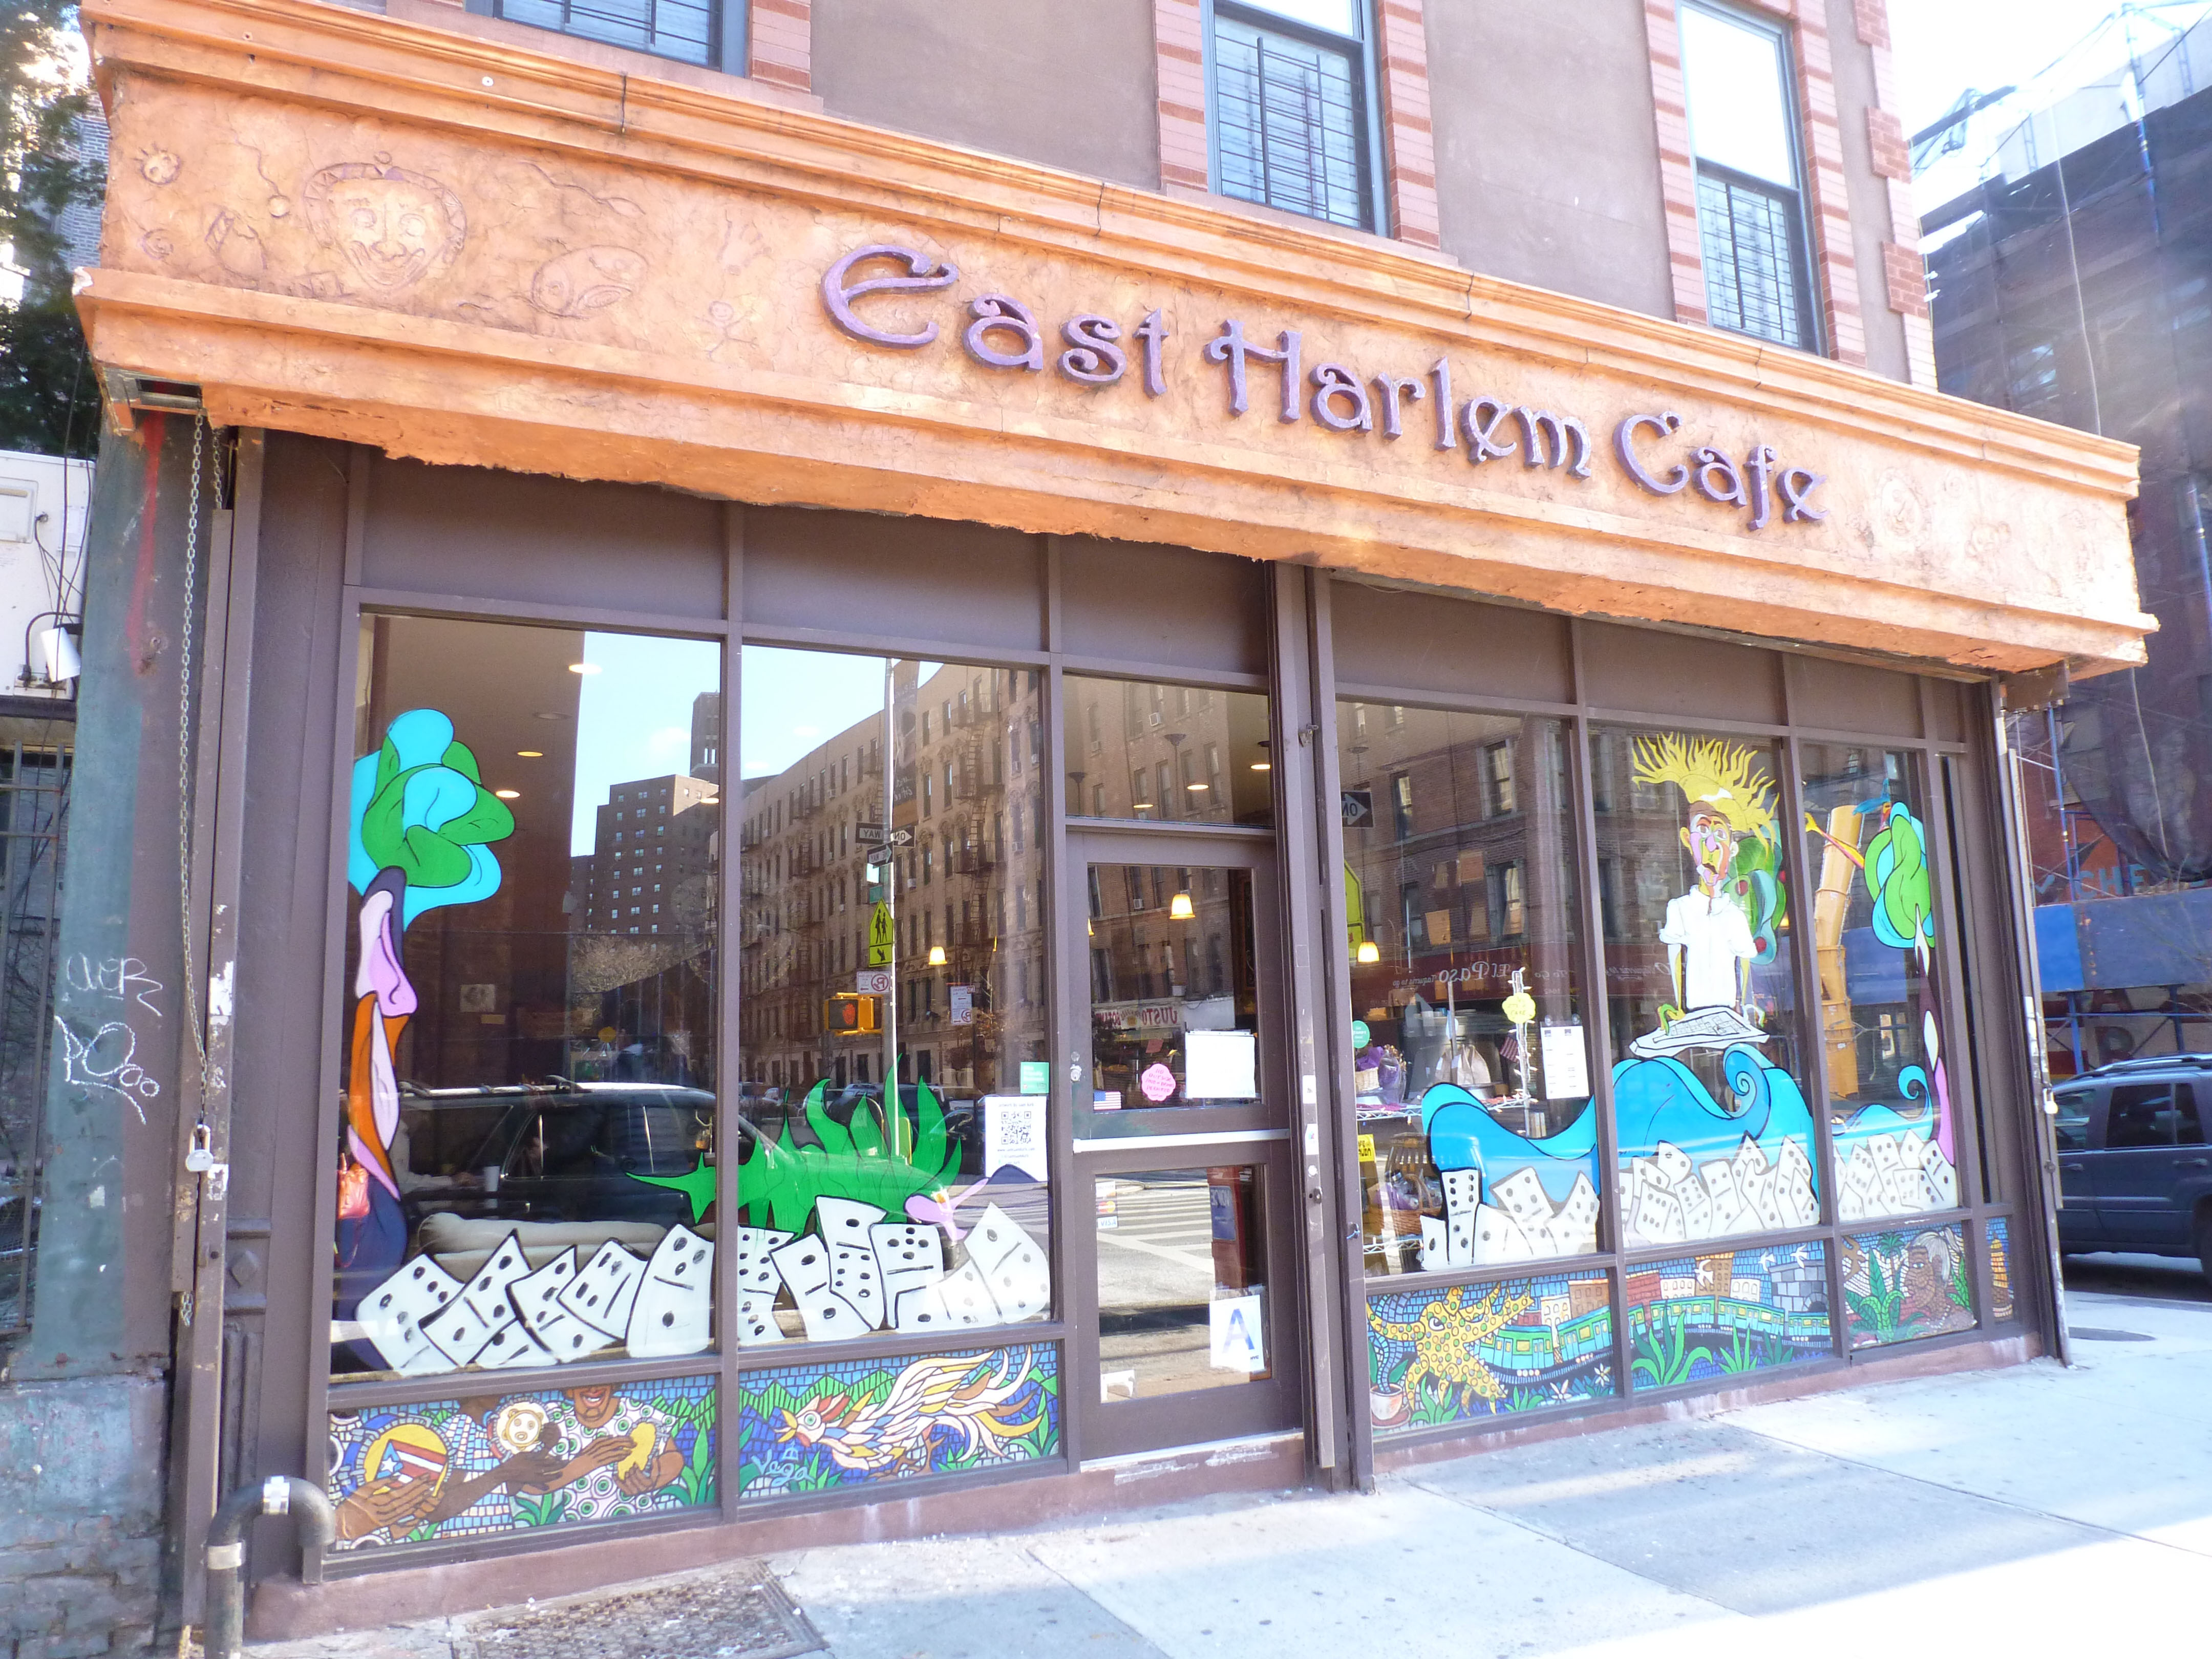 Harlem cafe wedding